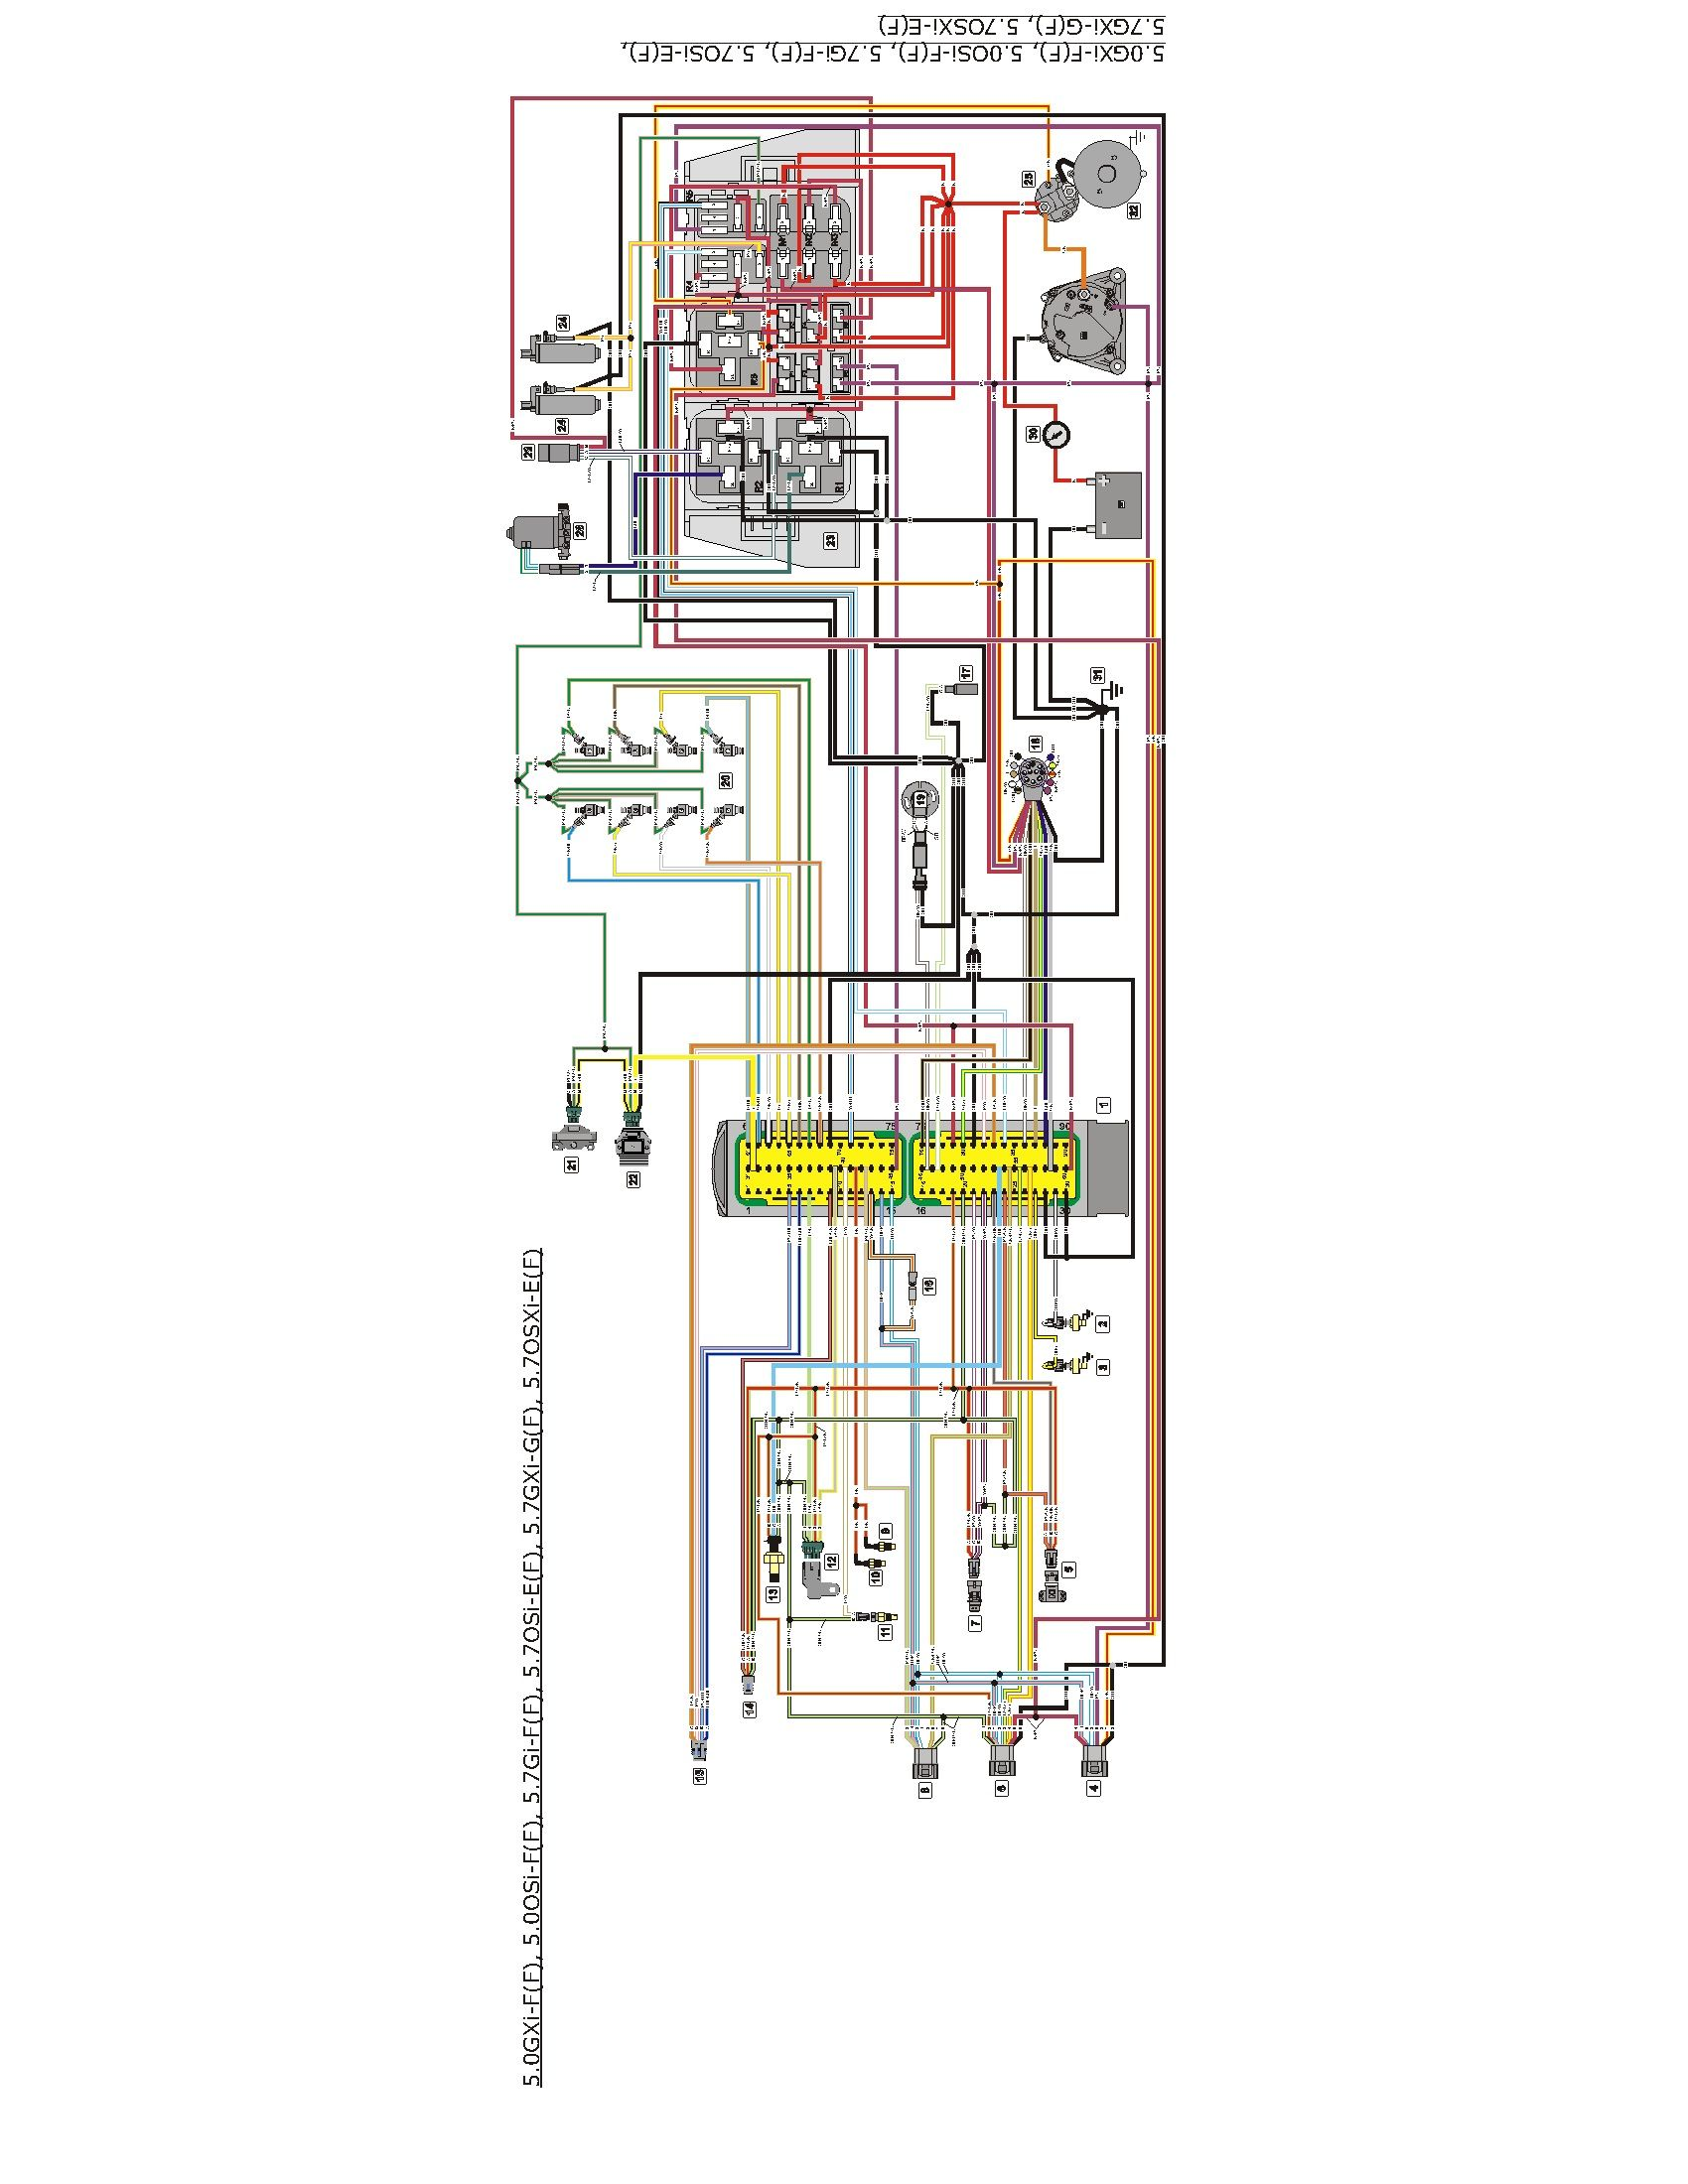 Volvo Penta 5 7 Engine Wiring Diagram With Images Volvo